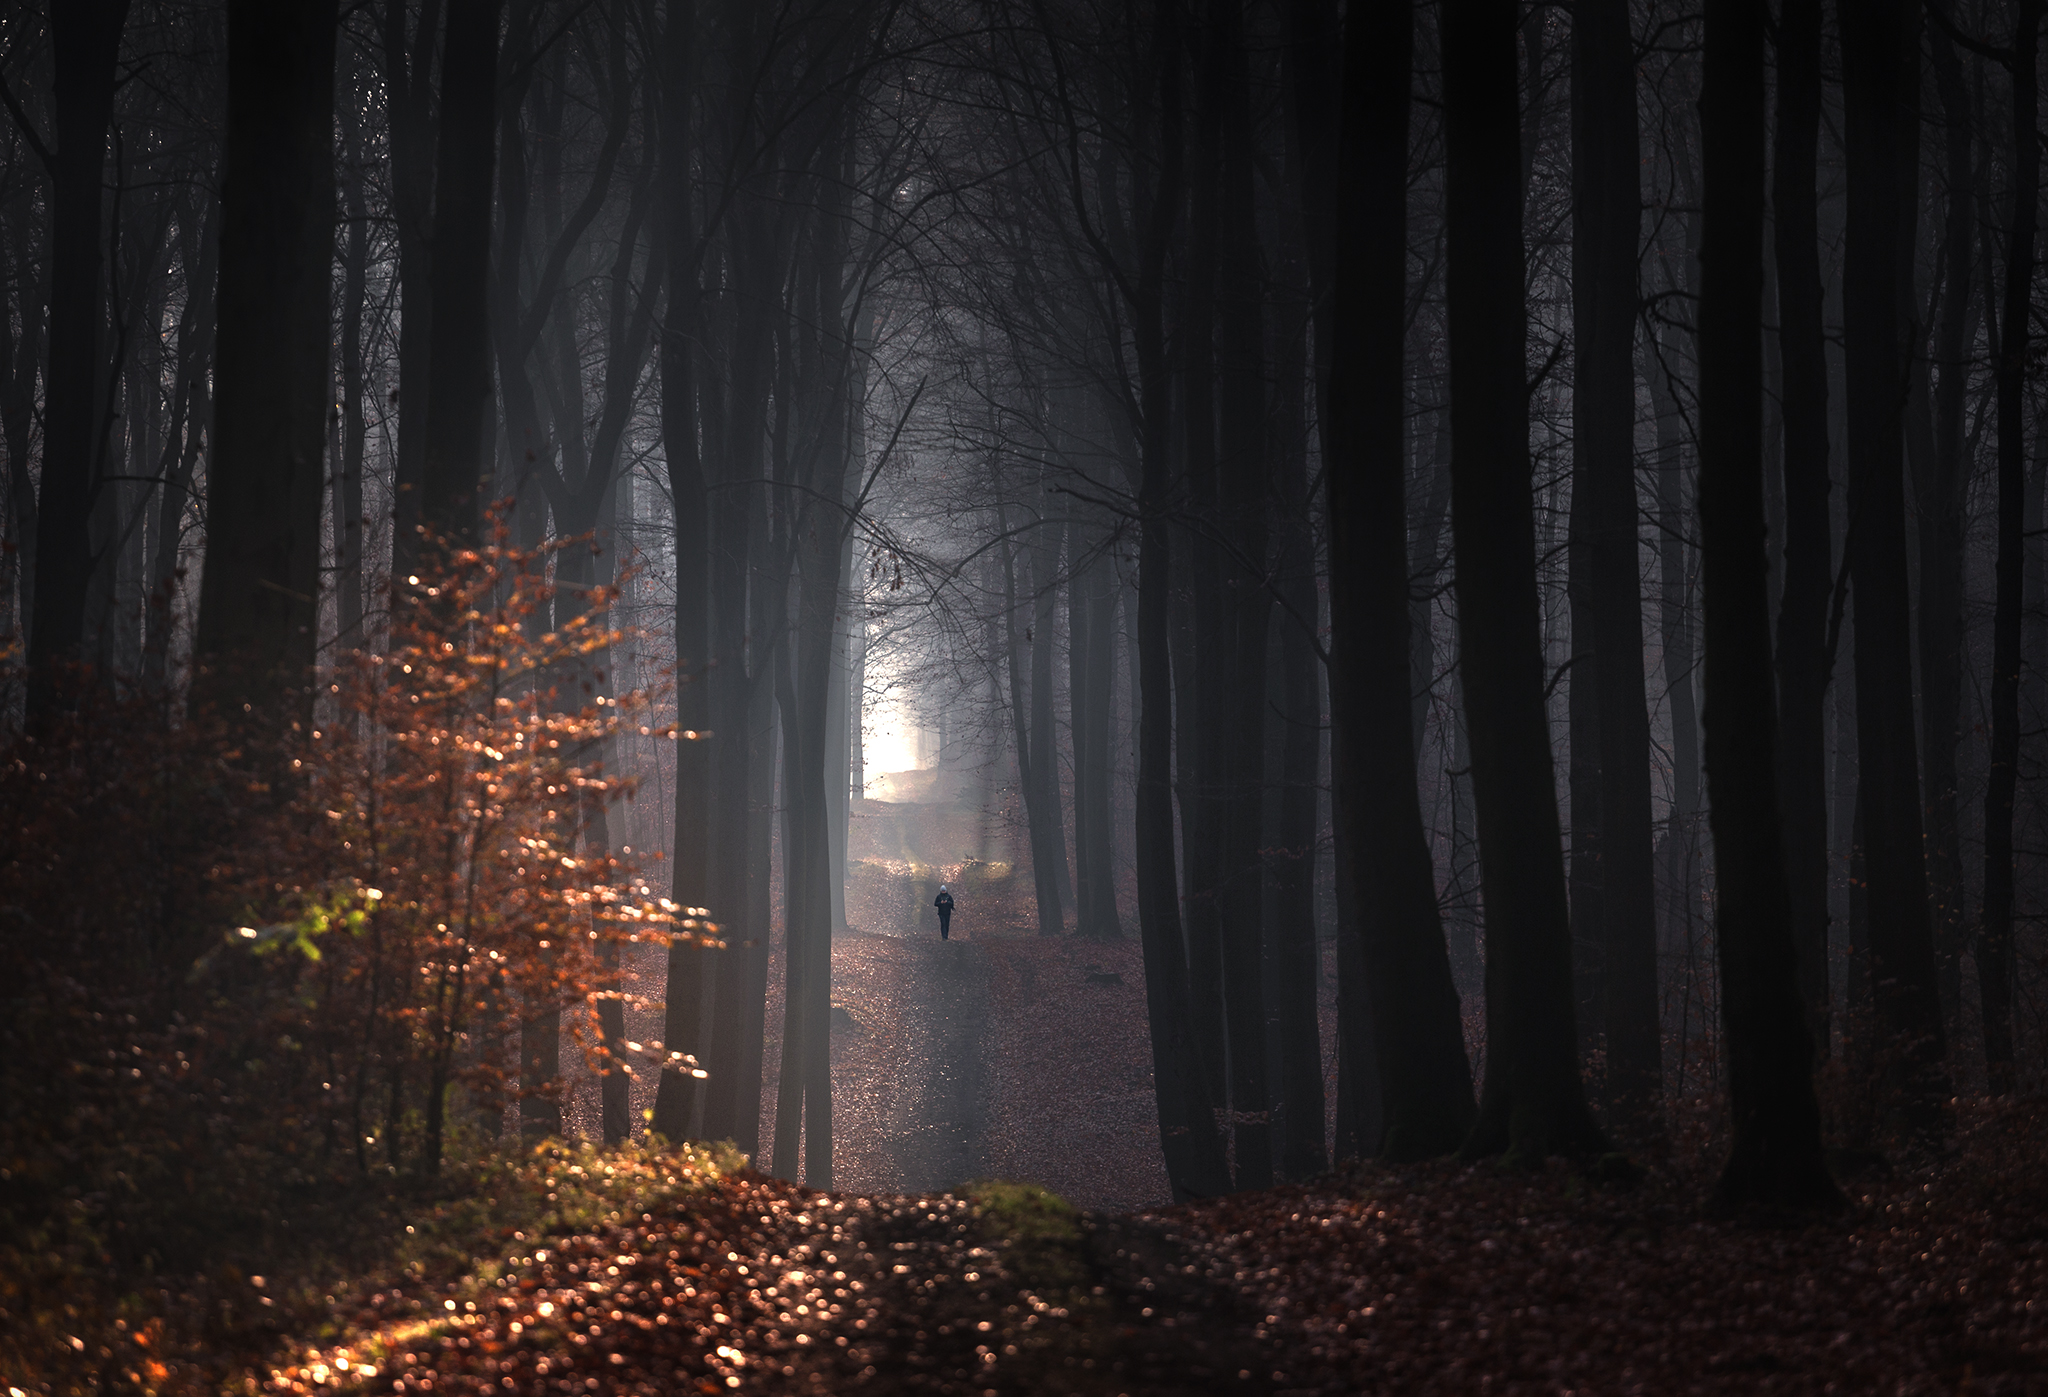 General 2048x1397 forest trees fall path people walking dappled sunlight nature outdoors photography landscape Pawel Olejniczak